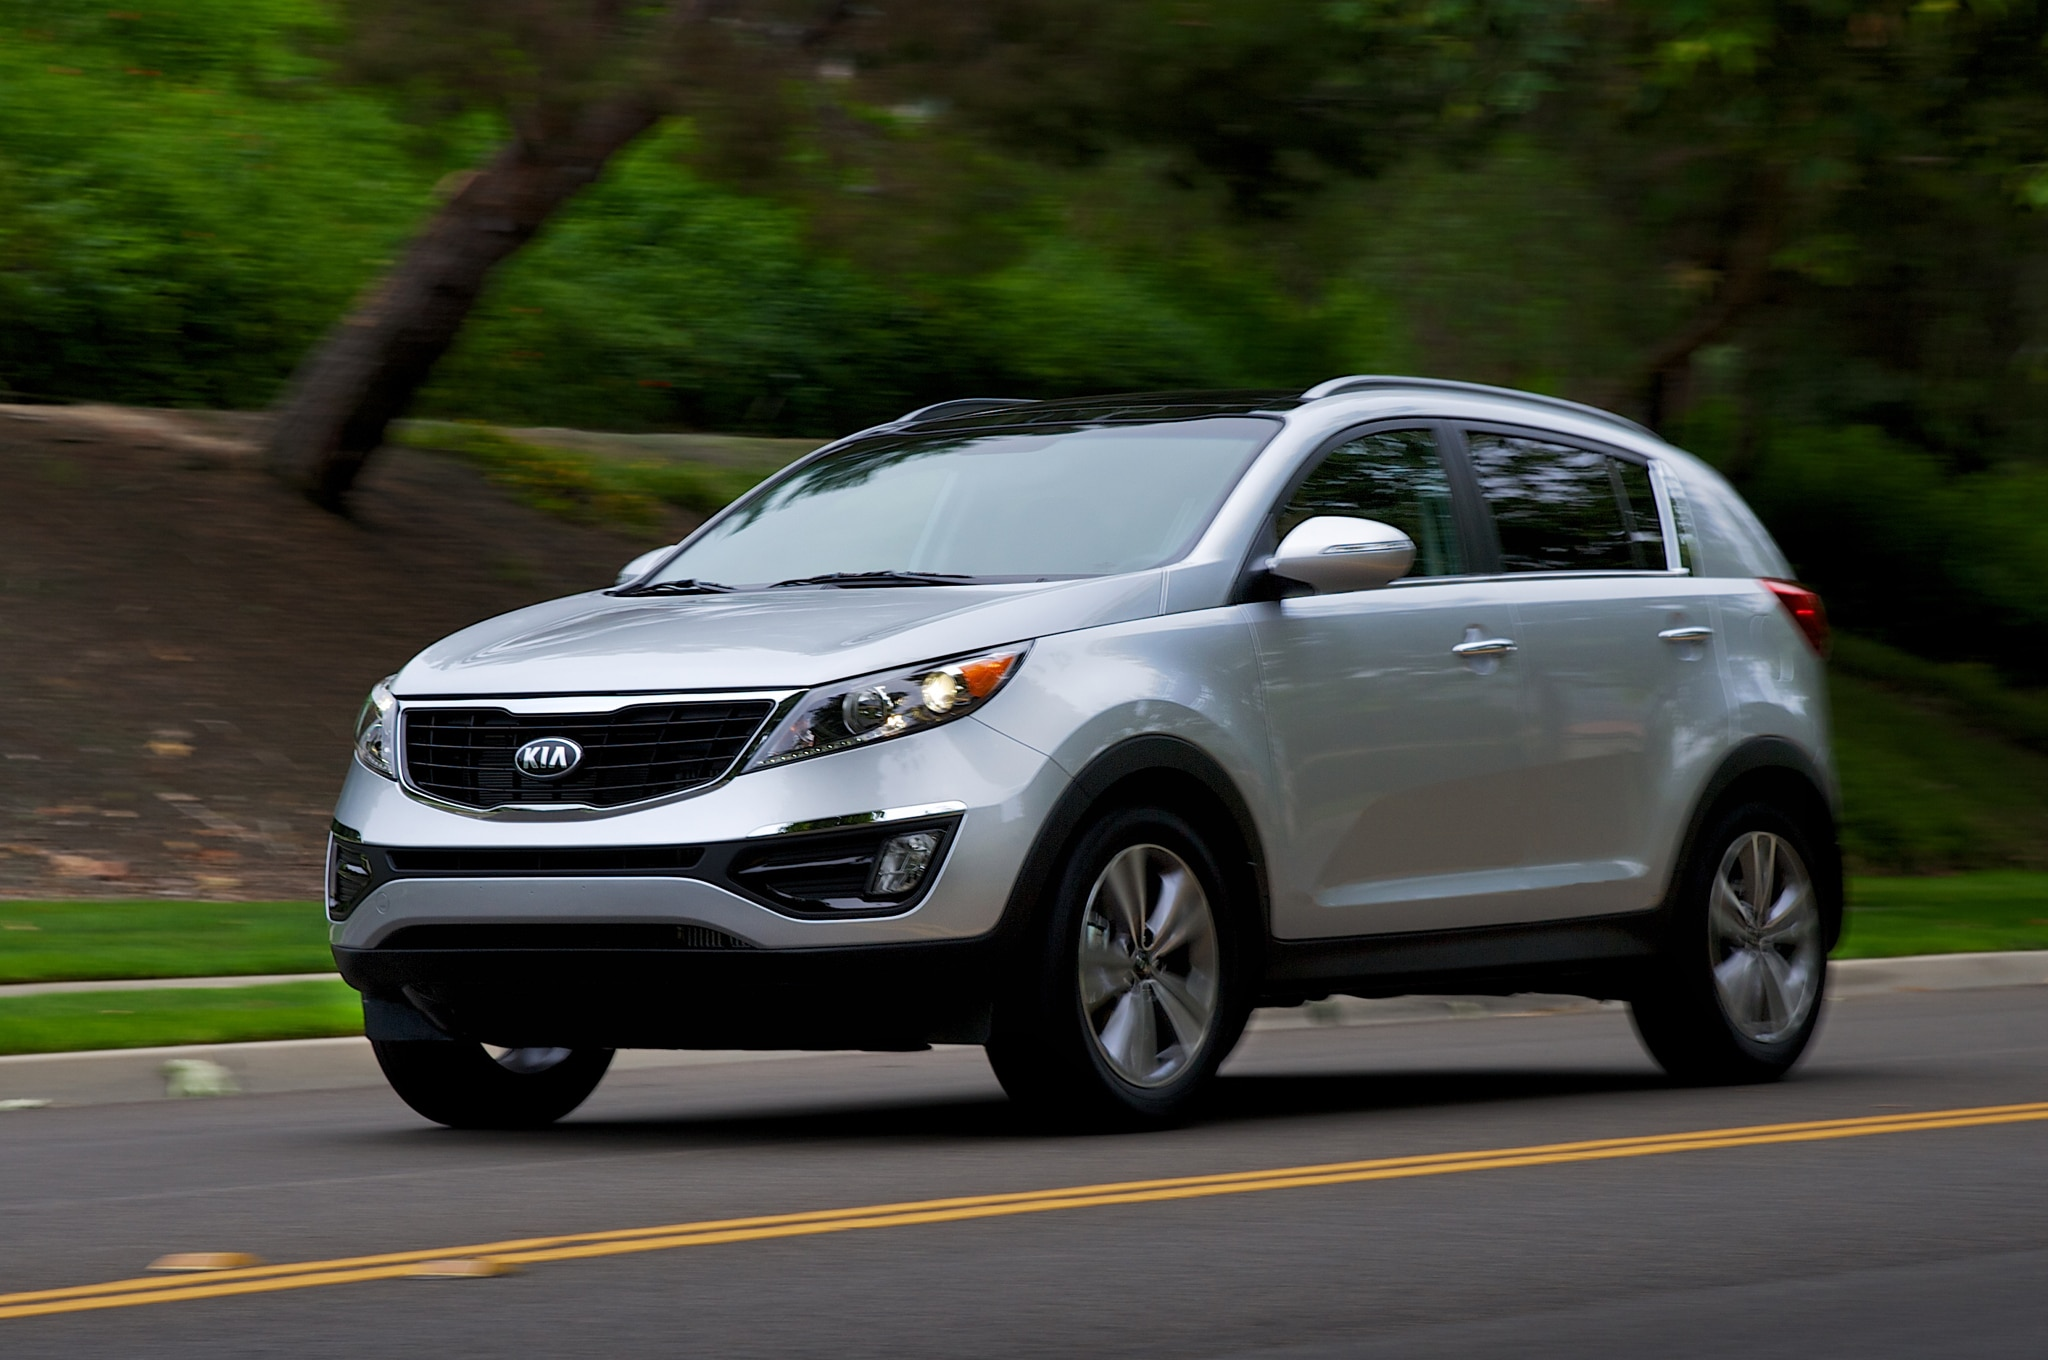 small resolution of 2014 kia sportage gets new gdi engine detail changes truck trend2014 kia sportage gets new